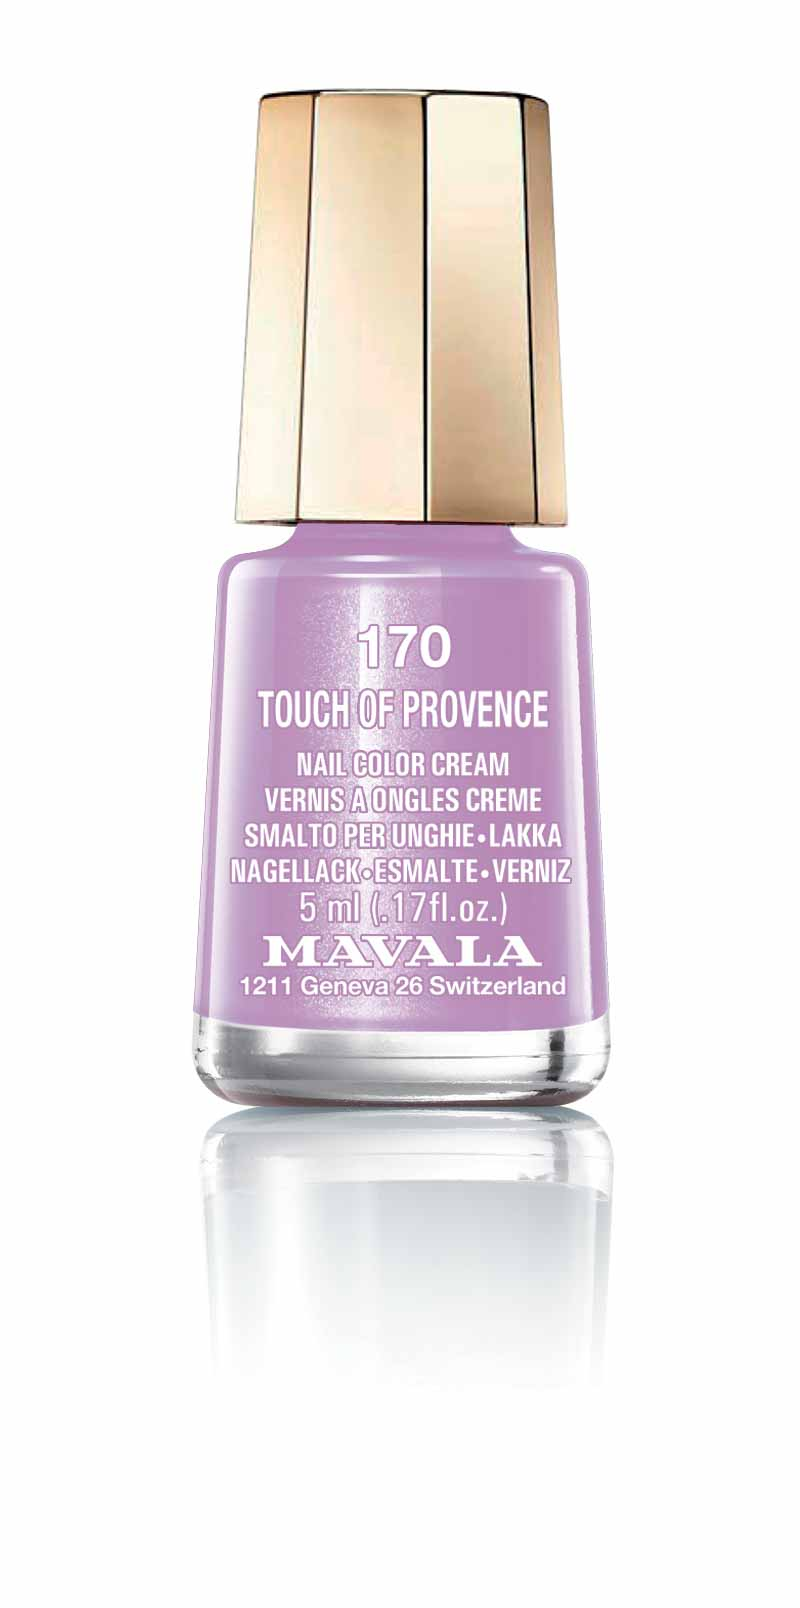 TOUCH OF PROVENCE